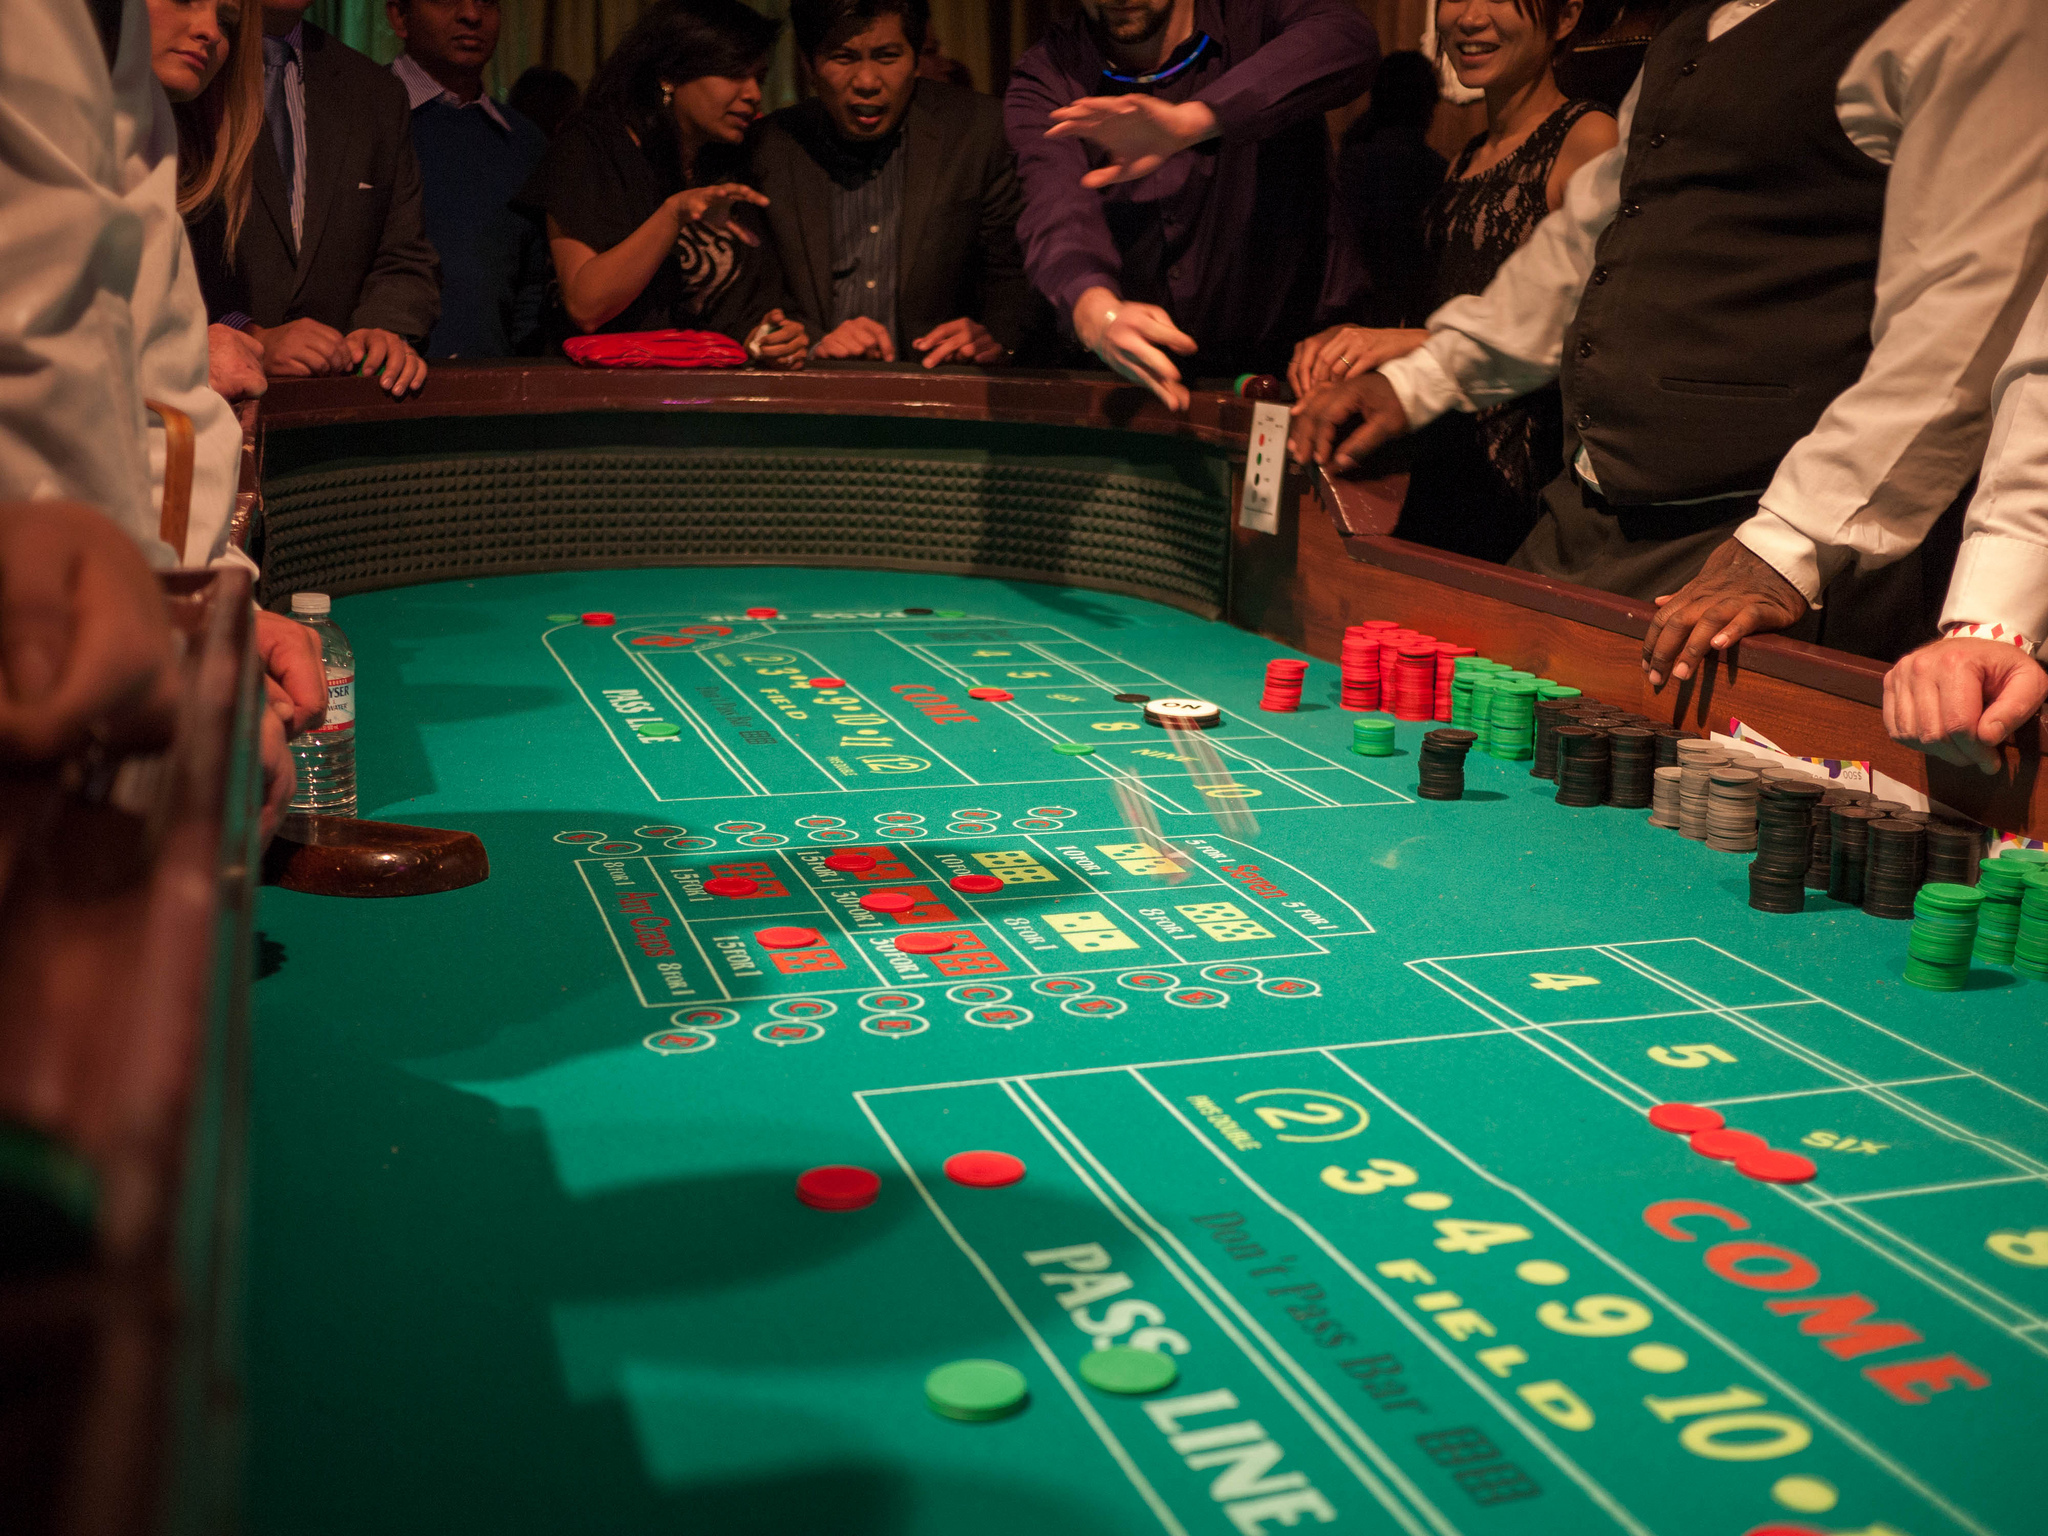 What online games have the best odds? Craps can have a miniscule house edge ... photo by CC user cjmartin on Flickr